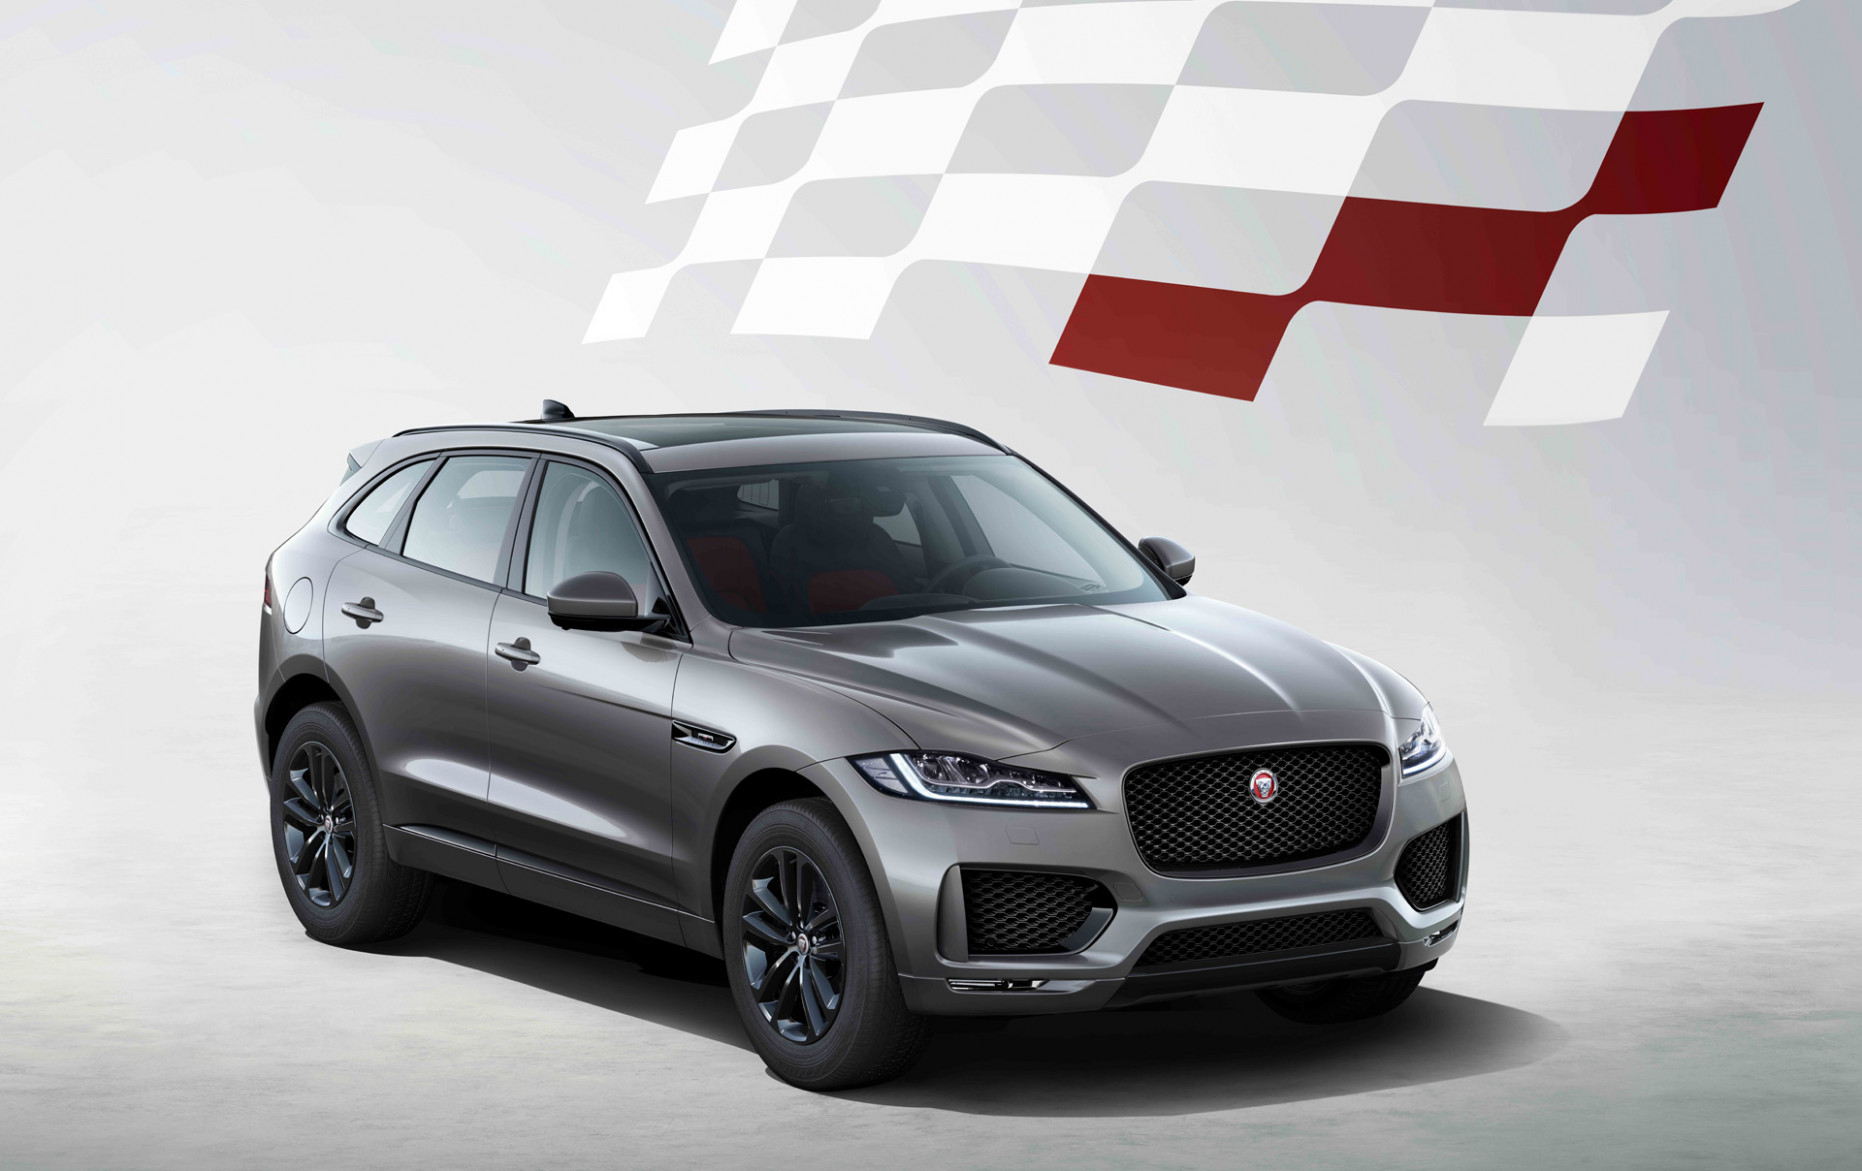 11 Jaguar F-Pace Review, Ratings, Specs, Prices, and Photos ..